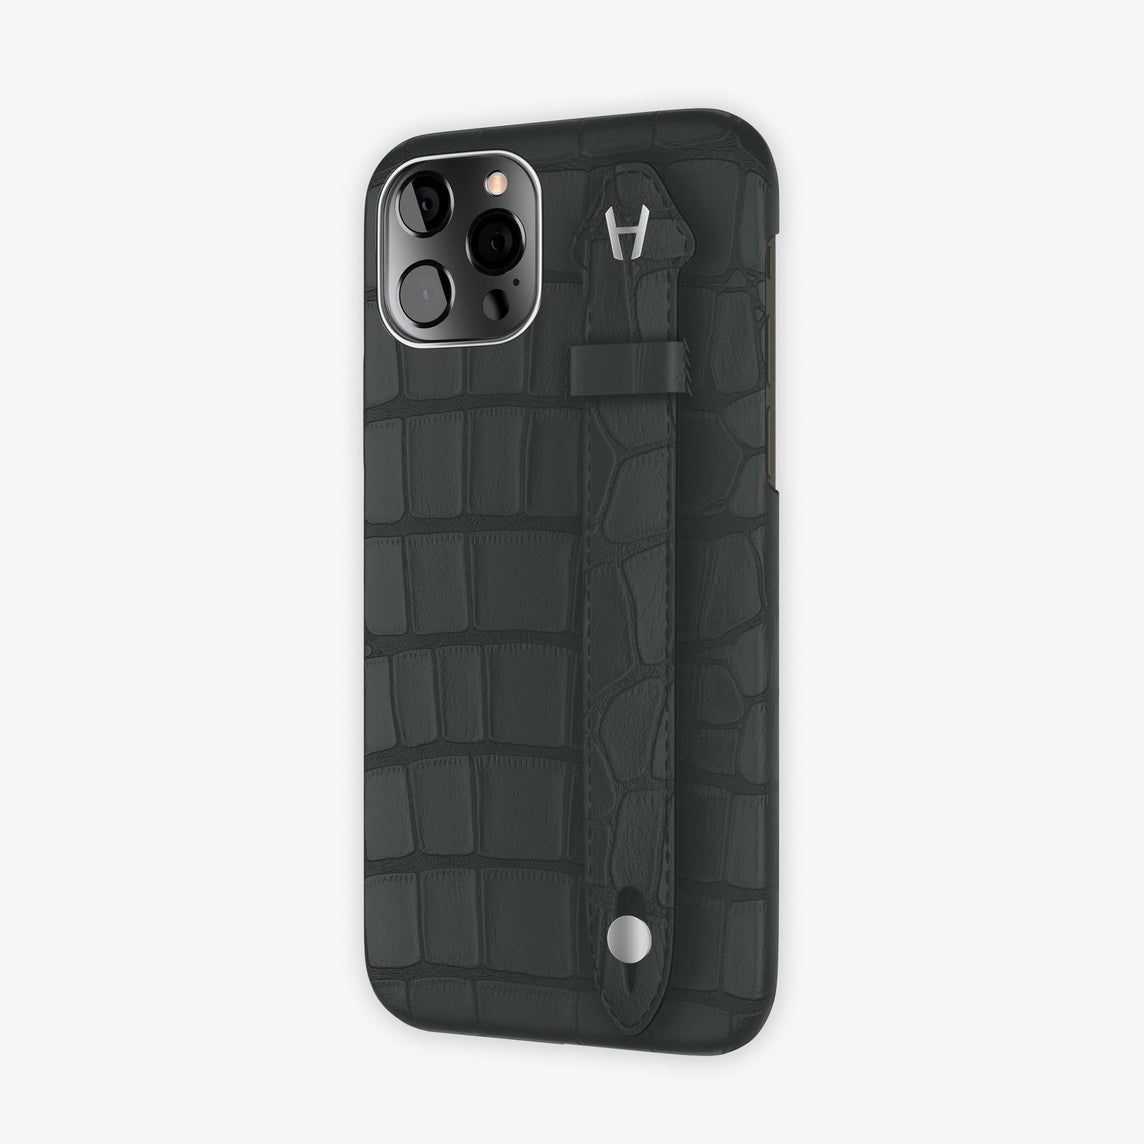 Alligator Side Finger Case iPhone 12 Pro | Anthracite/Anthracite -Stainless Steel